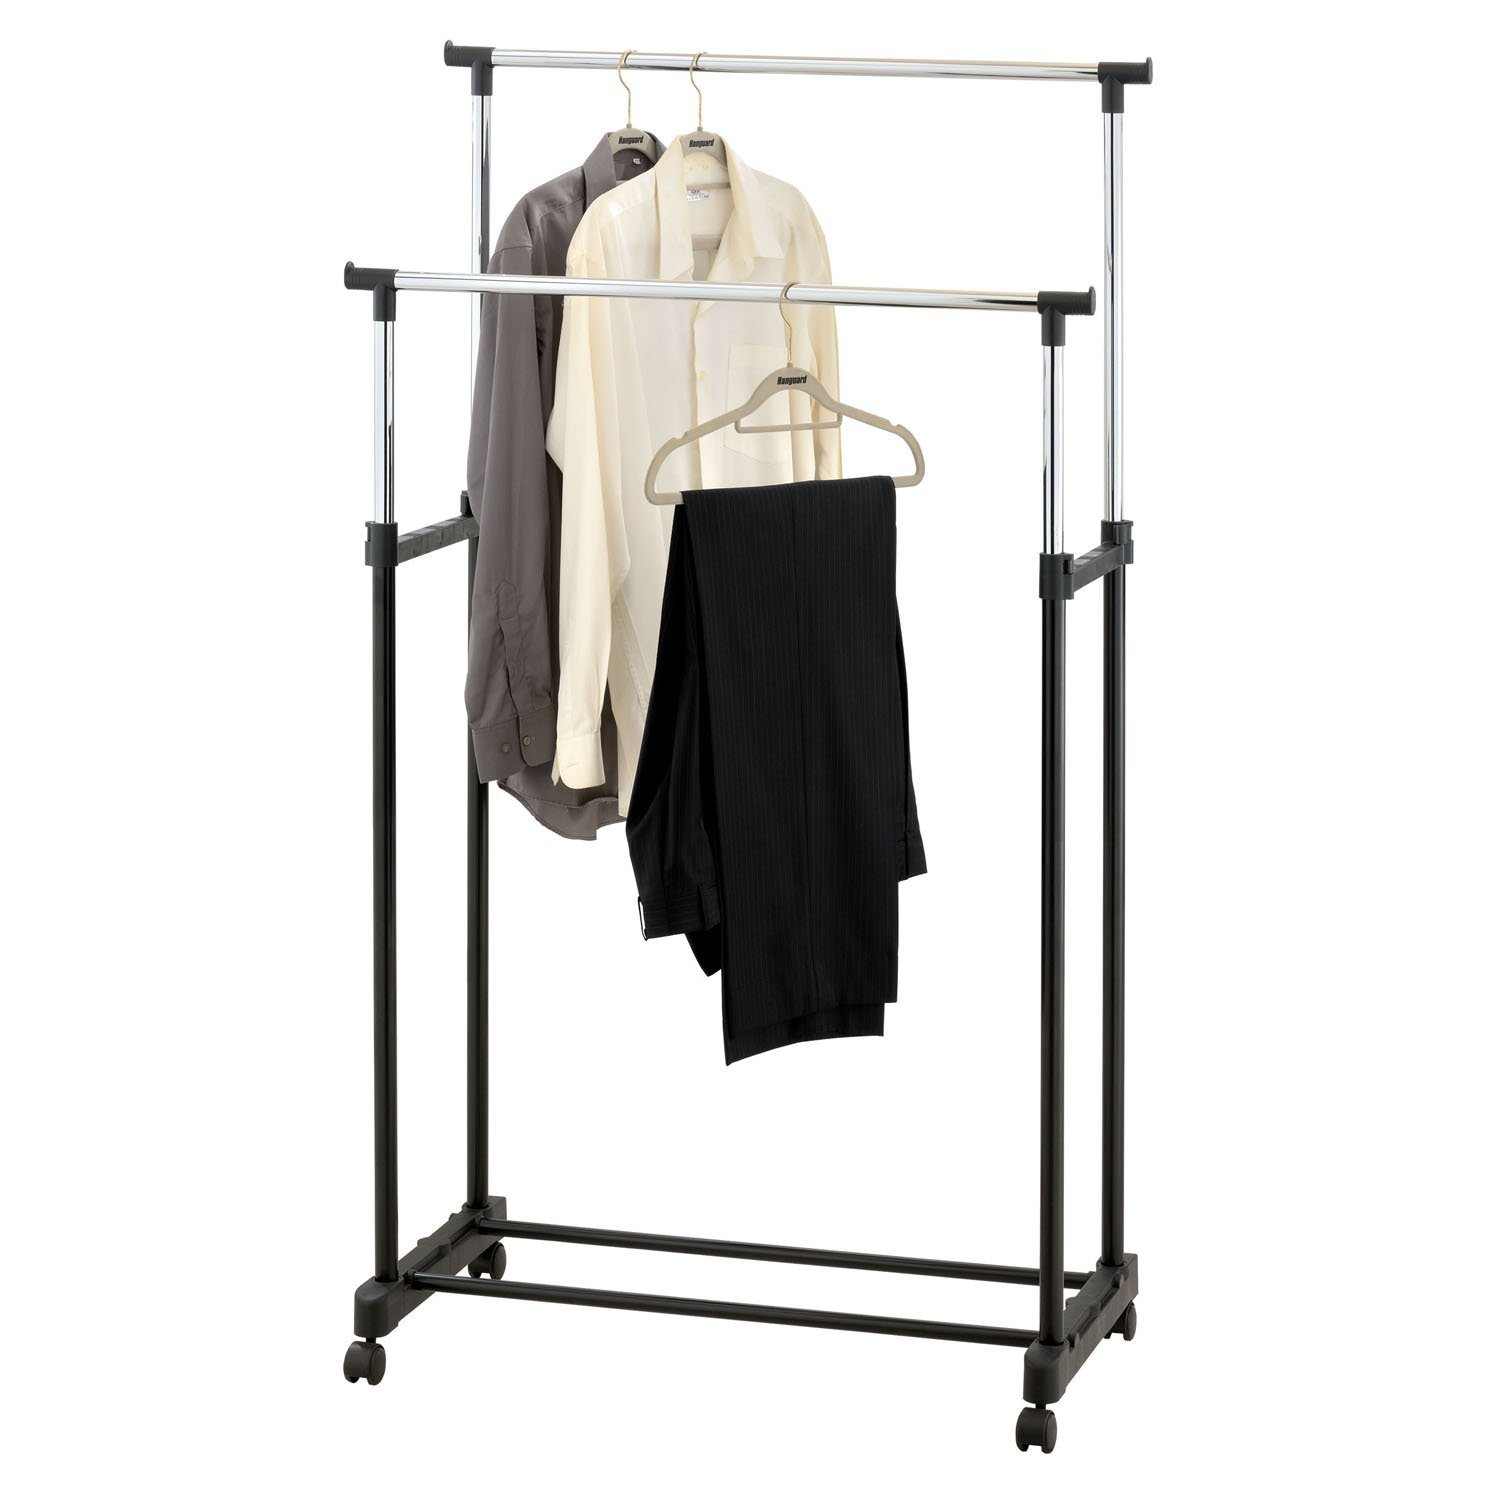 Double Clothes Rail Portable Hanging Garment W Shoe Rack